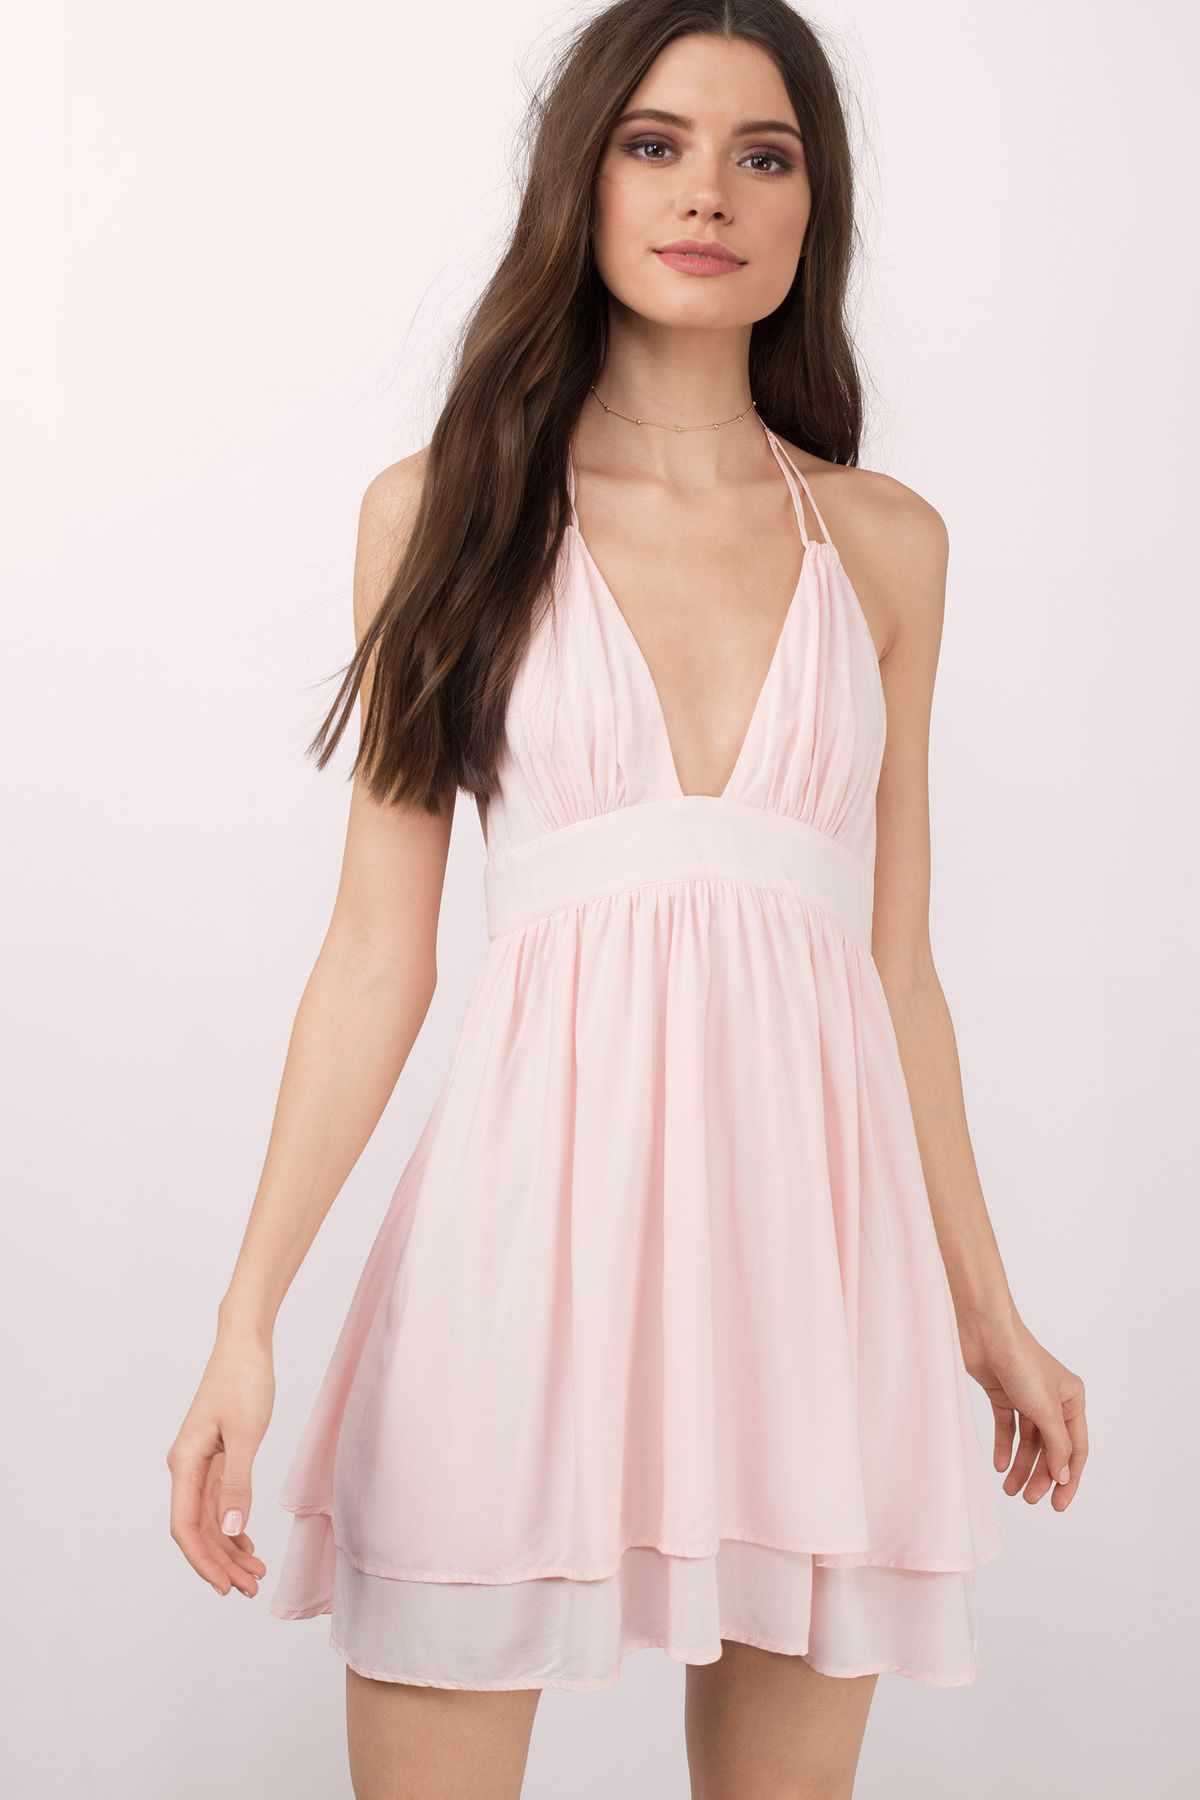 096249e782ef Sure Thing Babydoll Dress at Tobi.com #shoptobi | Dresses! in 2019 ...